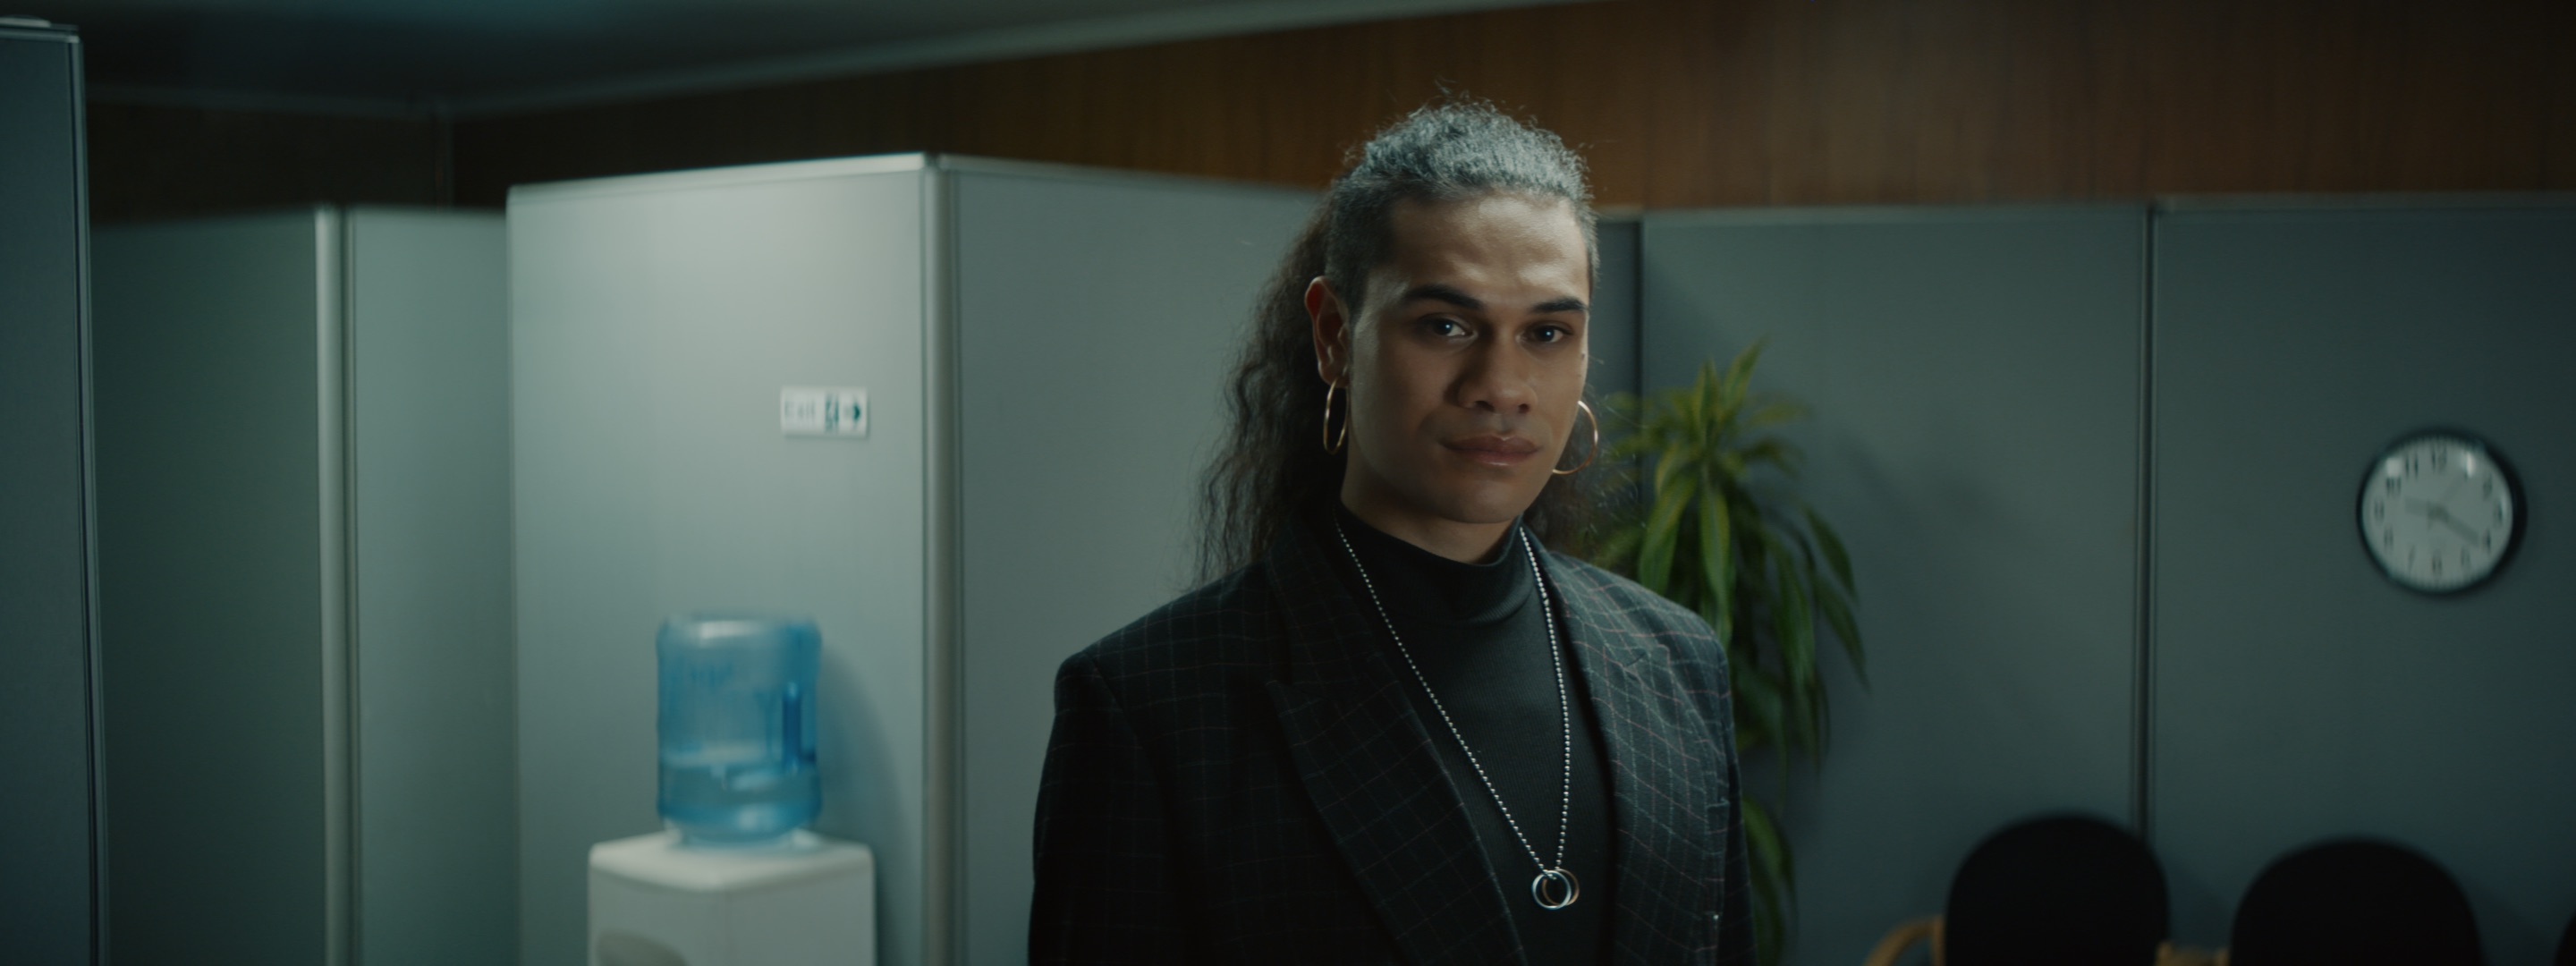 Seen+Noted: Spark and OUTLine promote inclusivity in recruitment in new Pride film via Colenso BBDO New Zealand